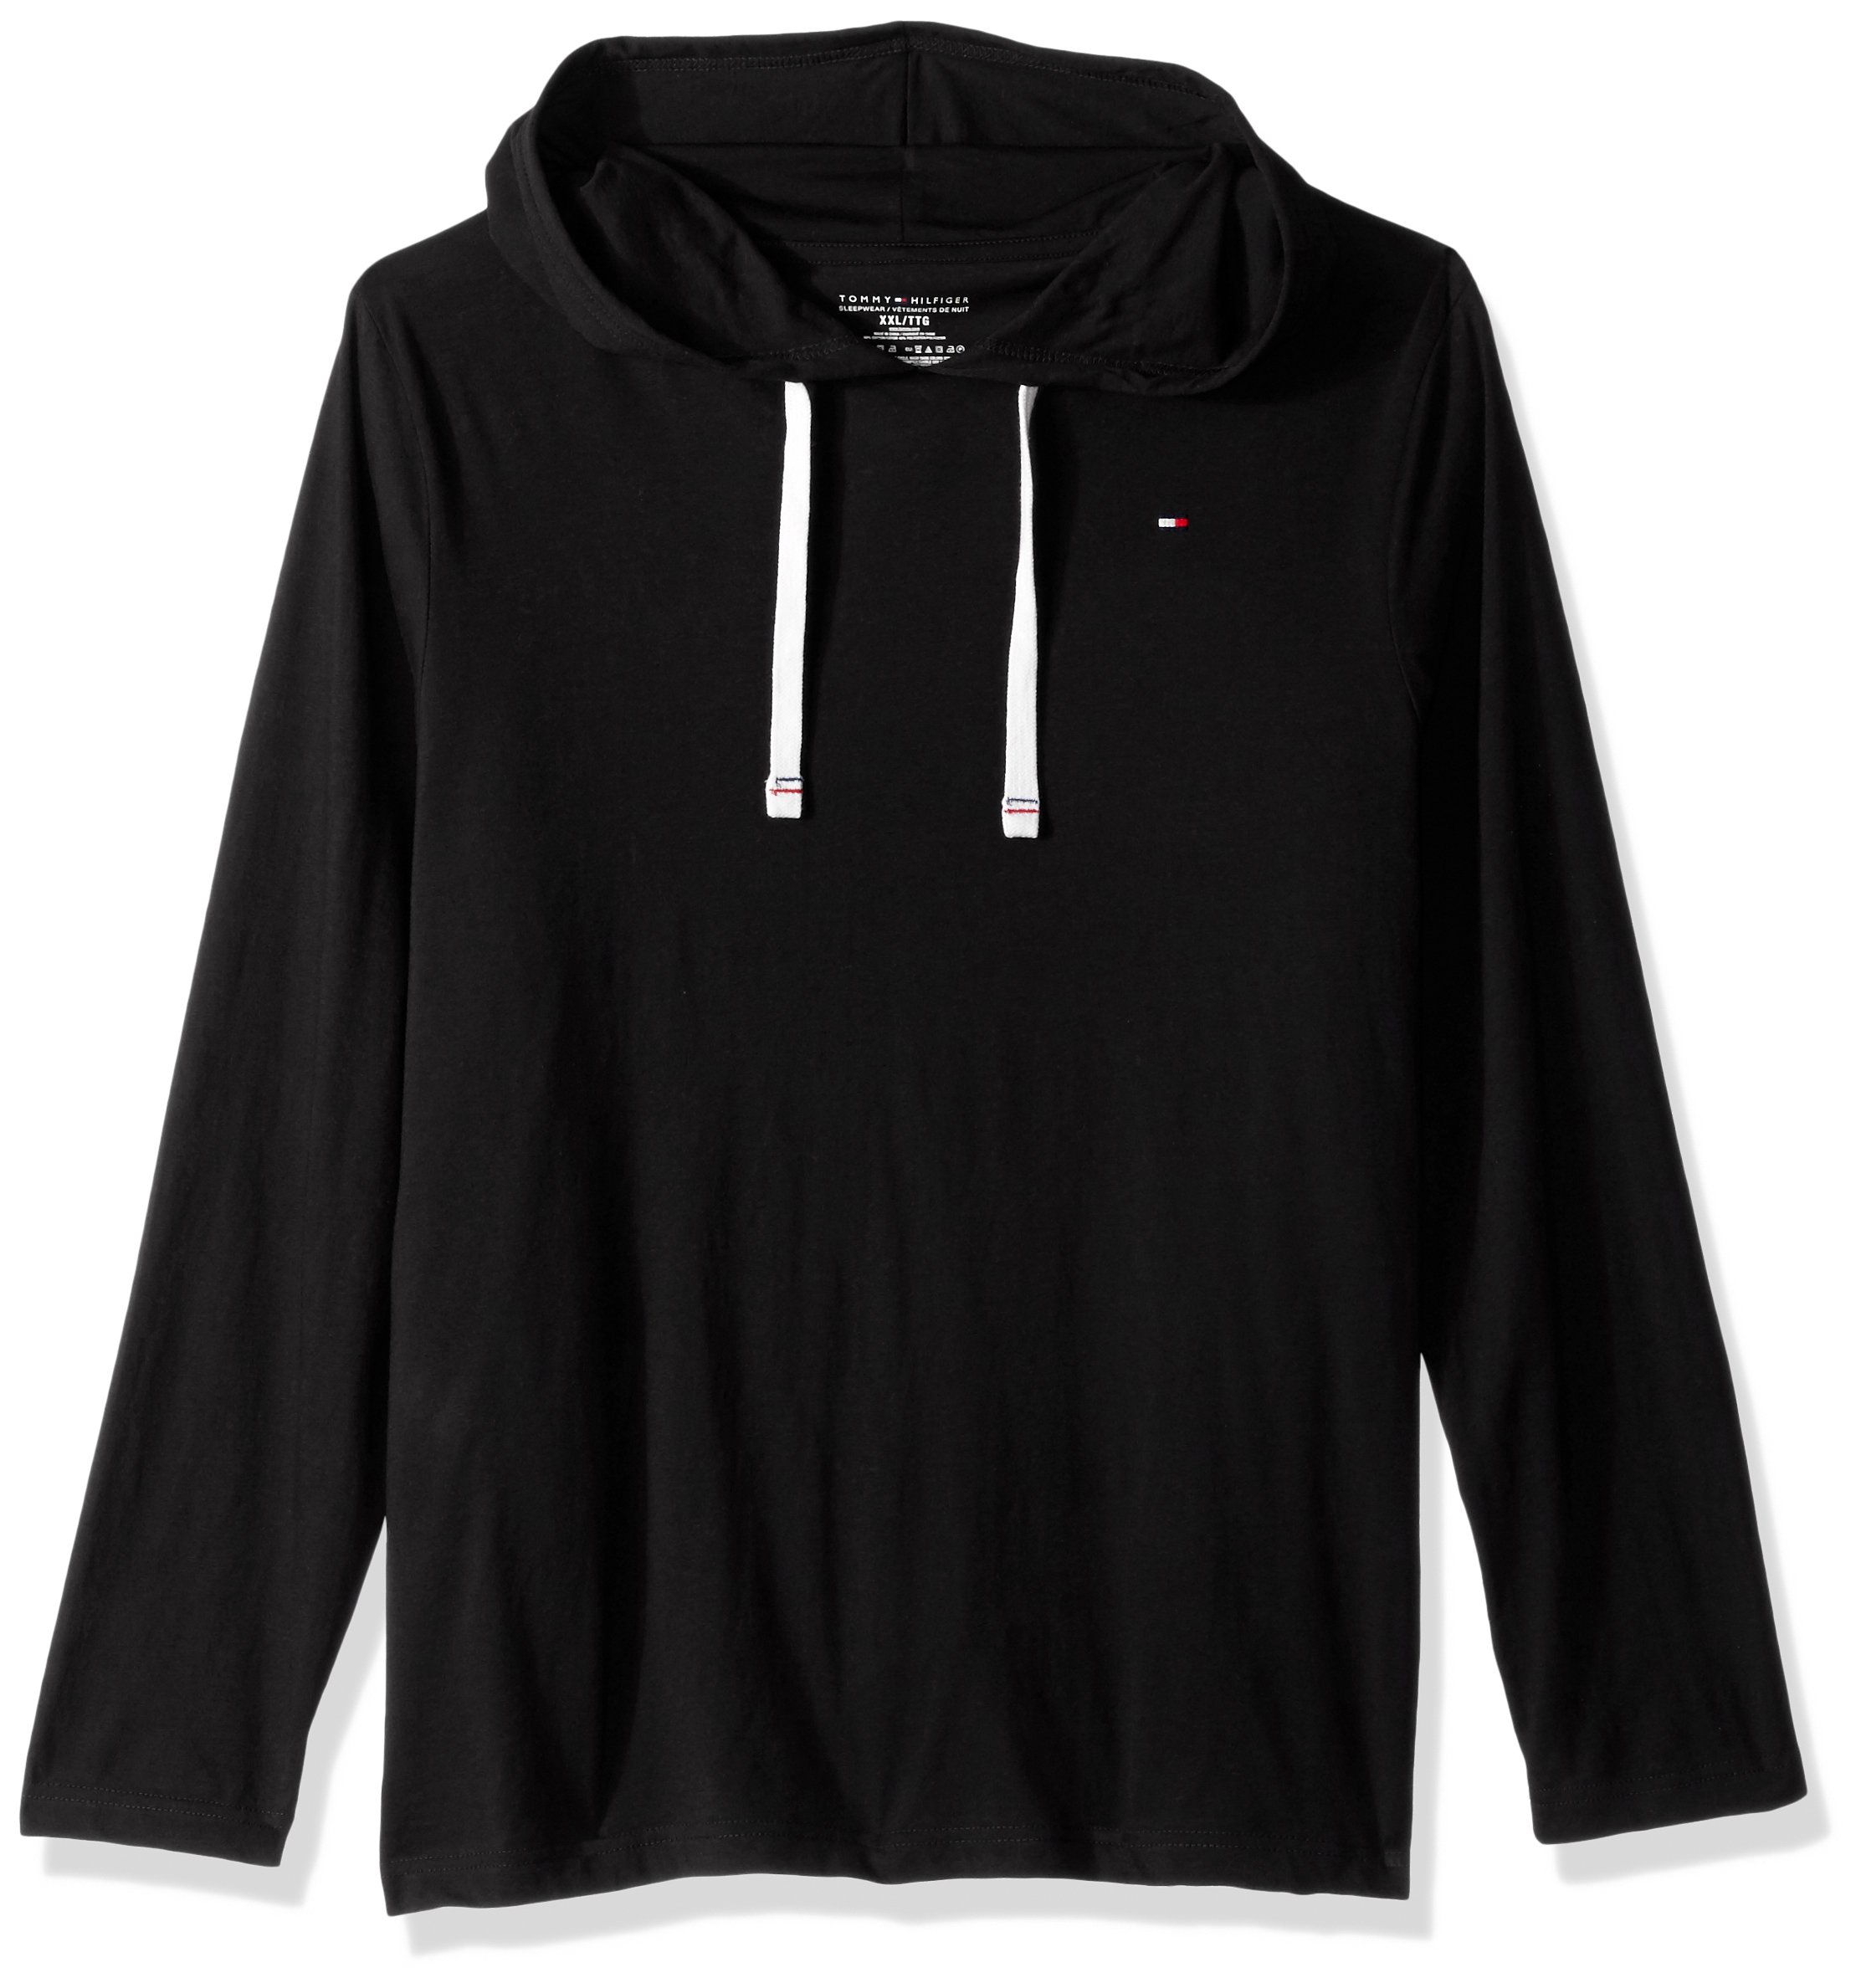 Tommy Hilfiger Men's Cotton Classics Pullover Hoodie, Black, Large